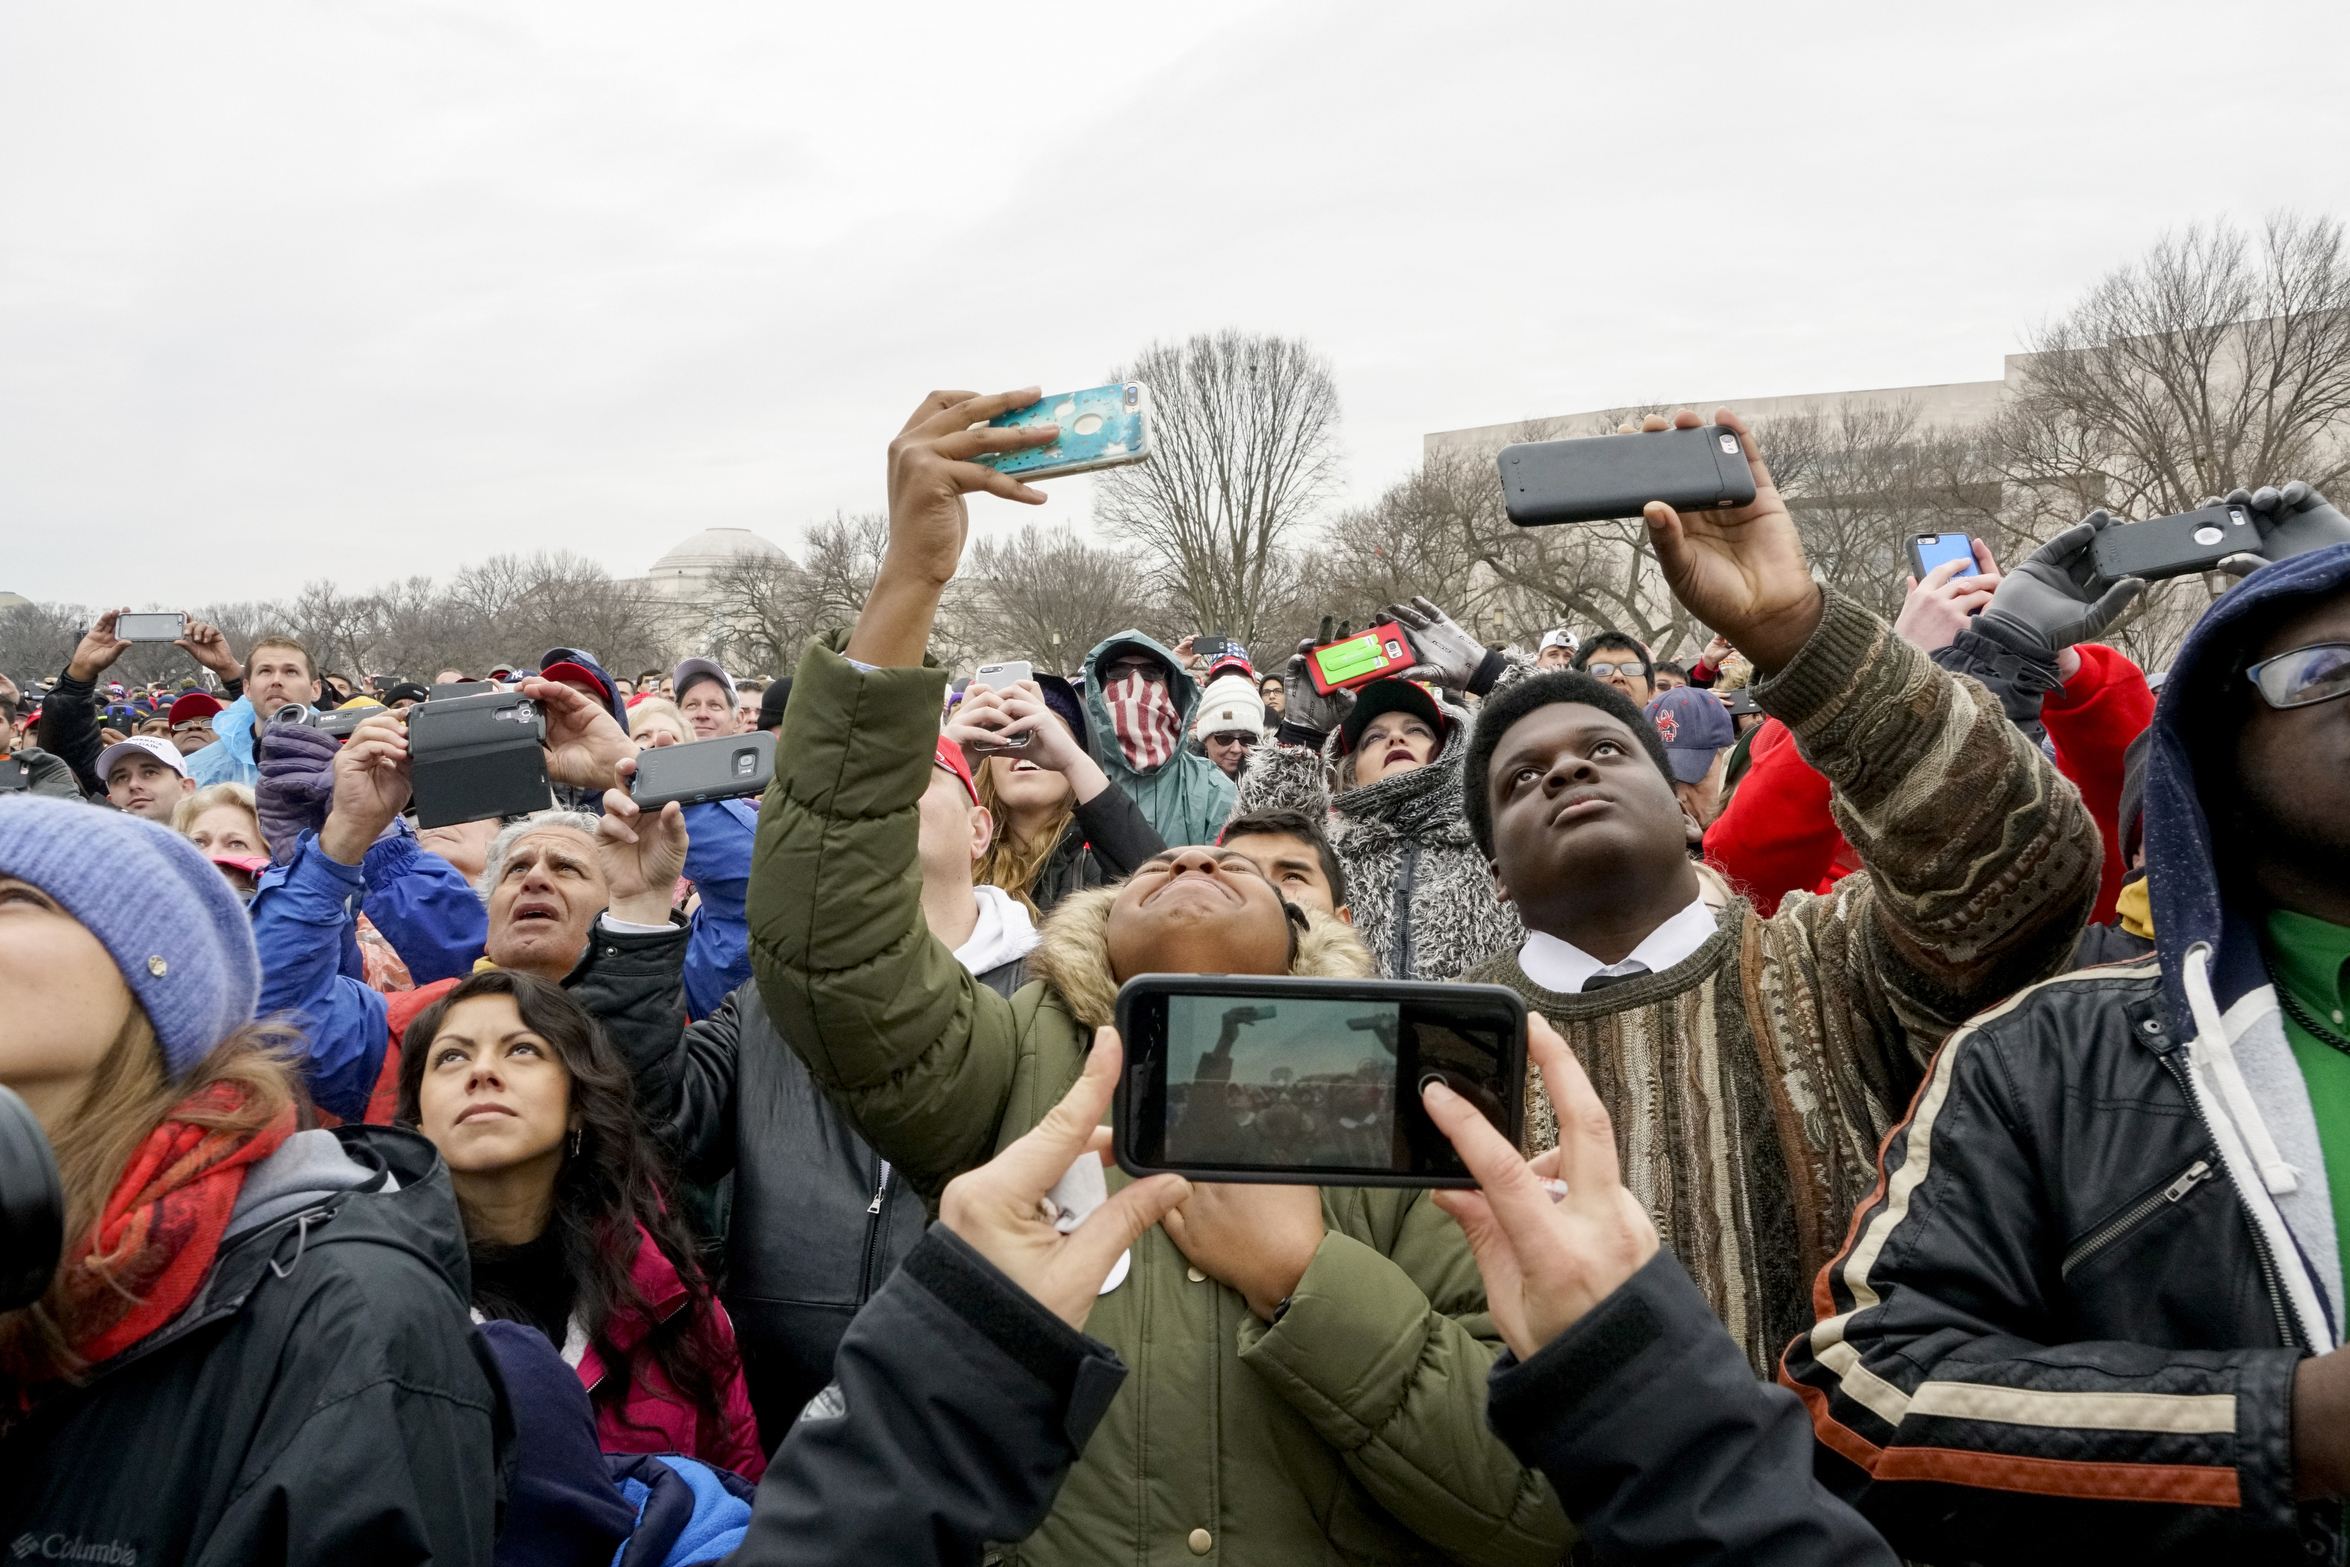 The crowd reacts to the inauguration address of Donald Trump, after he was sworn in as the 45th President of the United States on the National Mall in Washington D.C., on Jan 20, 2017.